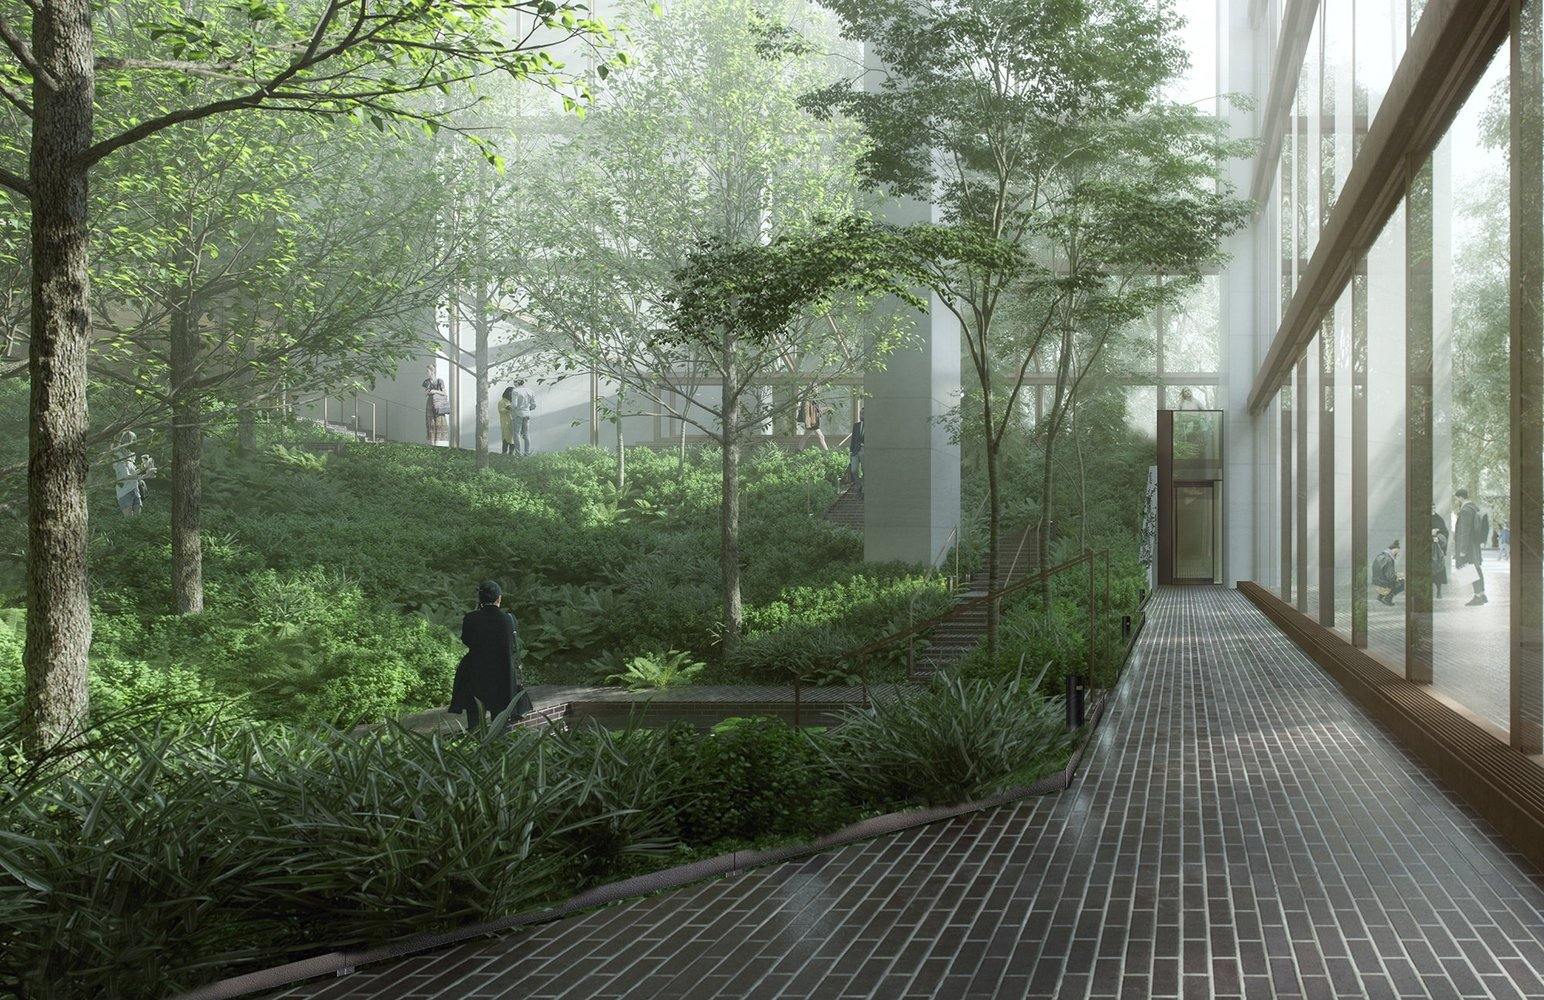 Ford foundation renovations by gensler approved by new york landmarks commissionrendering of proposed modifications